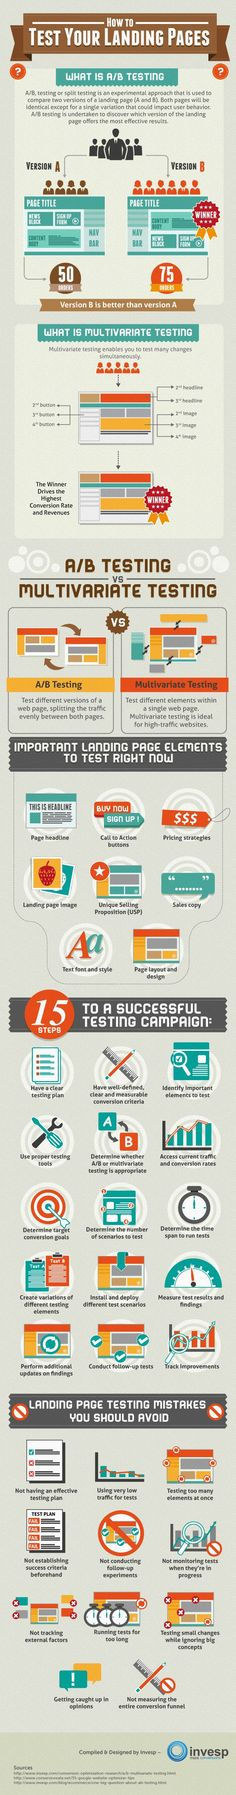 Many folks assume that as soon as they design a good looking landing page their job is done. Nothing can be further from the truth. You can't improve your conversation rate and reduce your CPA if you don't test your landing pages rigorously. This infographic by Invesp shows how you can get started …